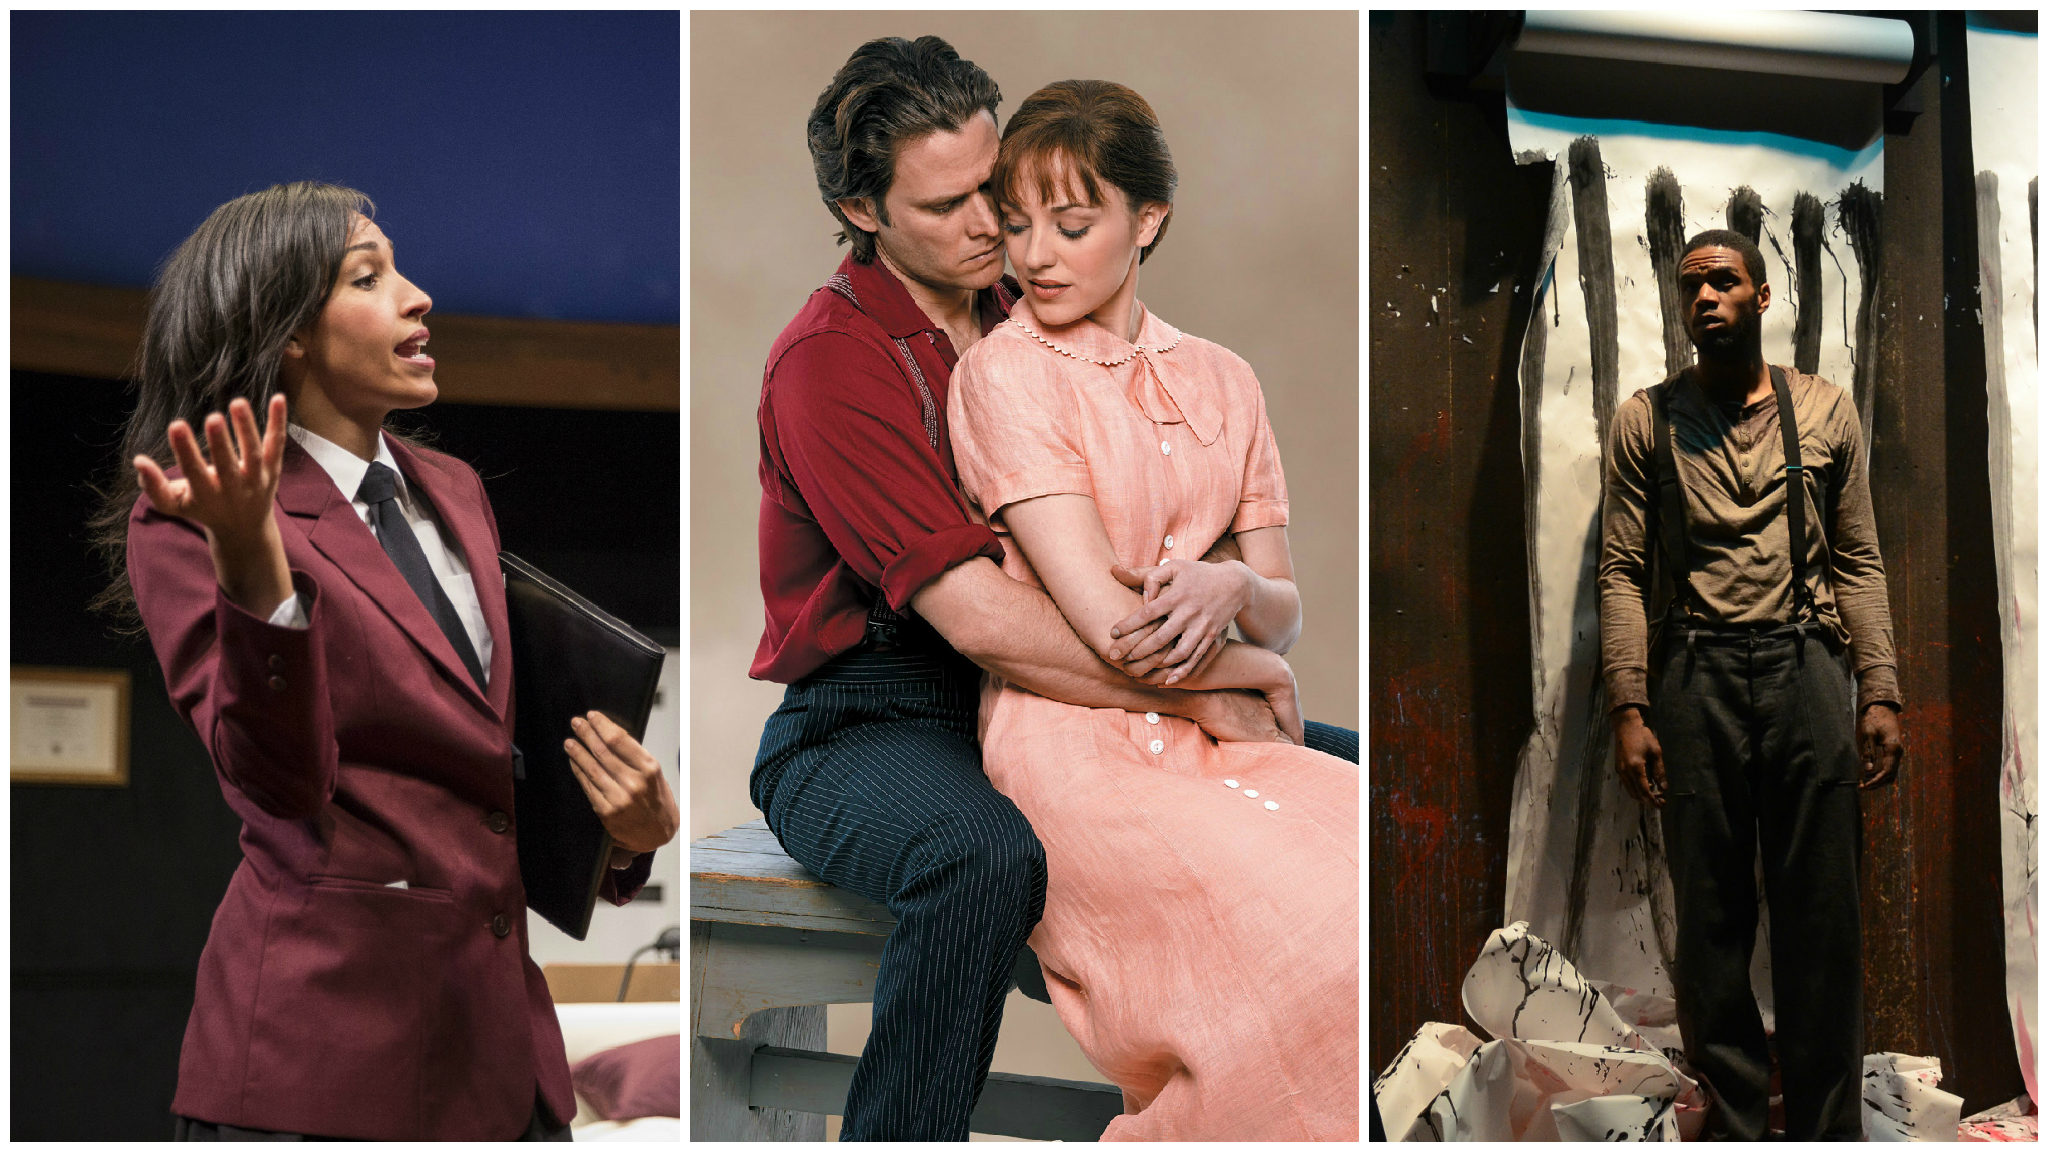 19 theater shows to see this spring